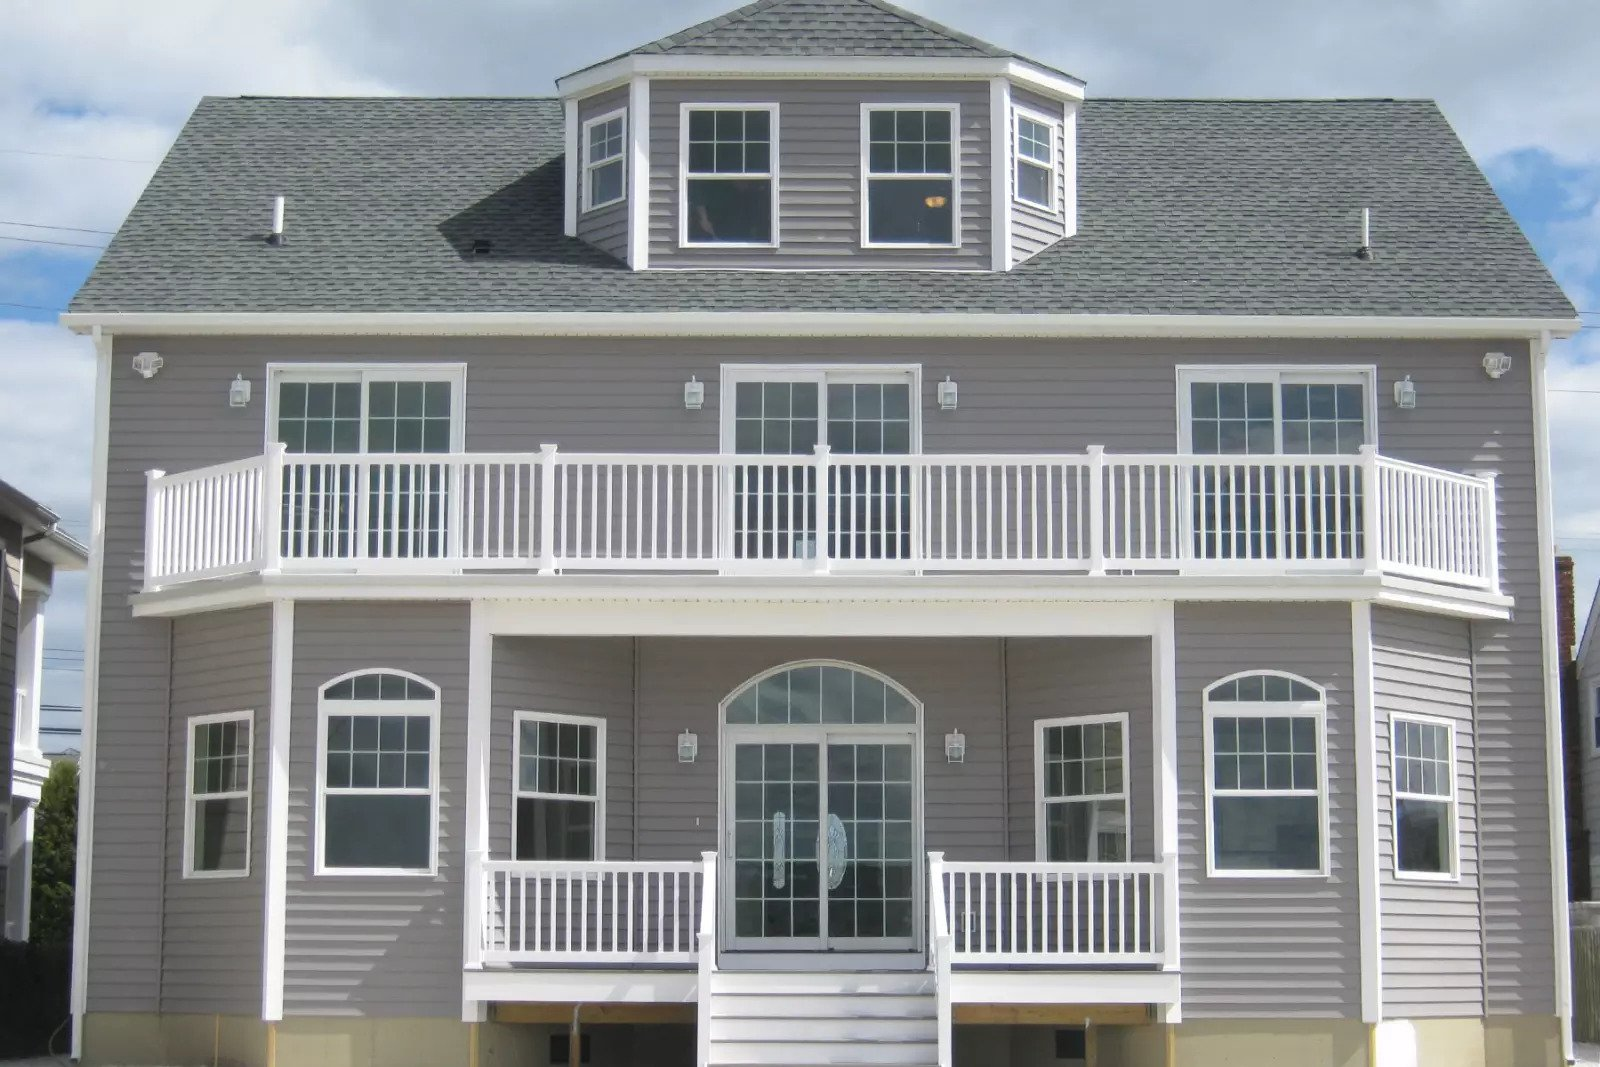 Tidewater Custom Modular Homes - Modular home - Chesapeake, VA